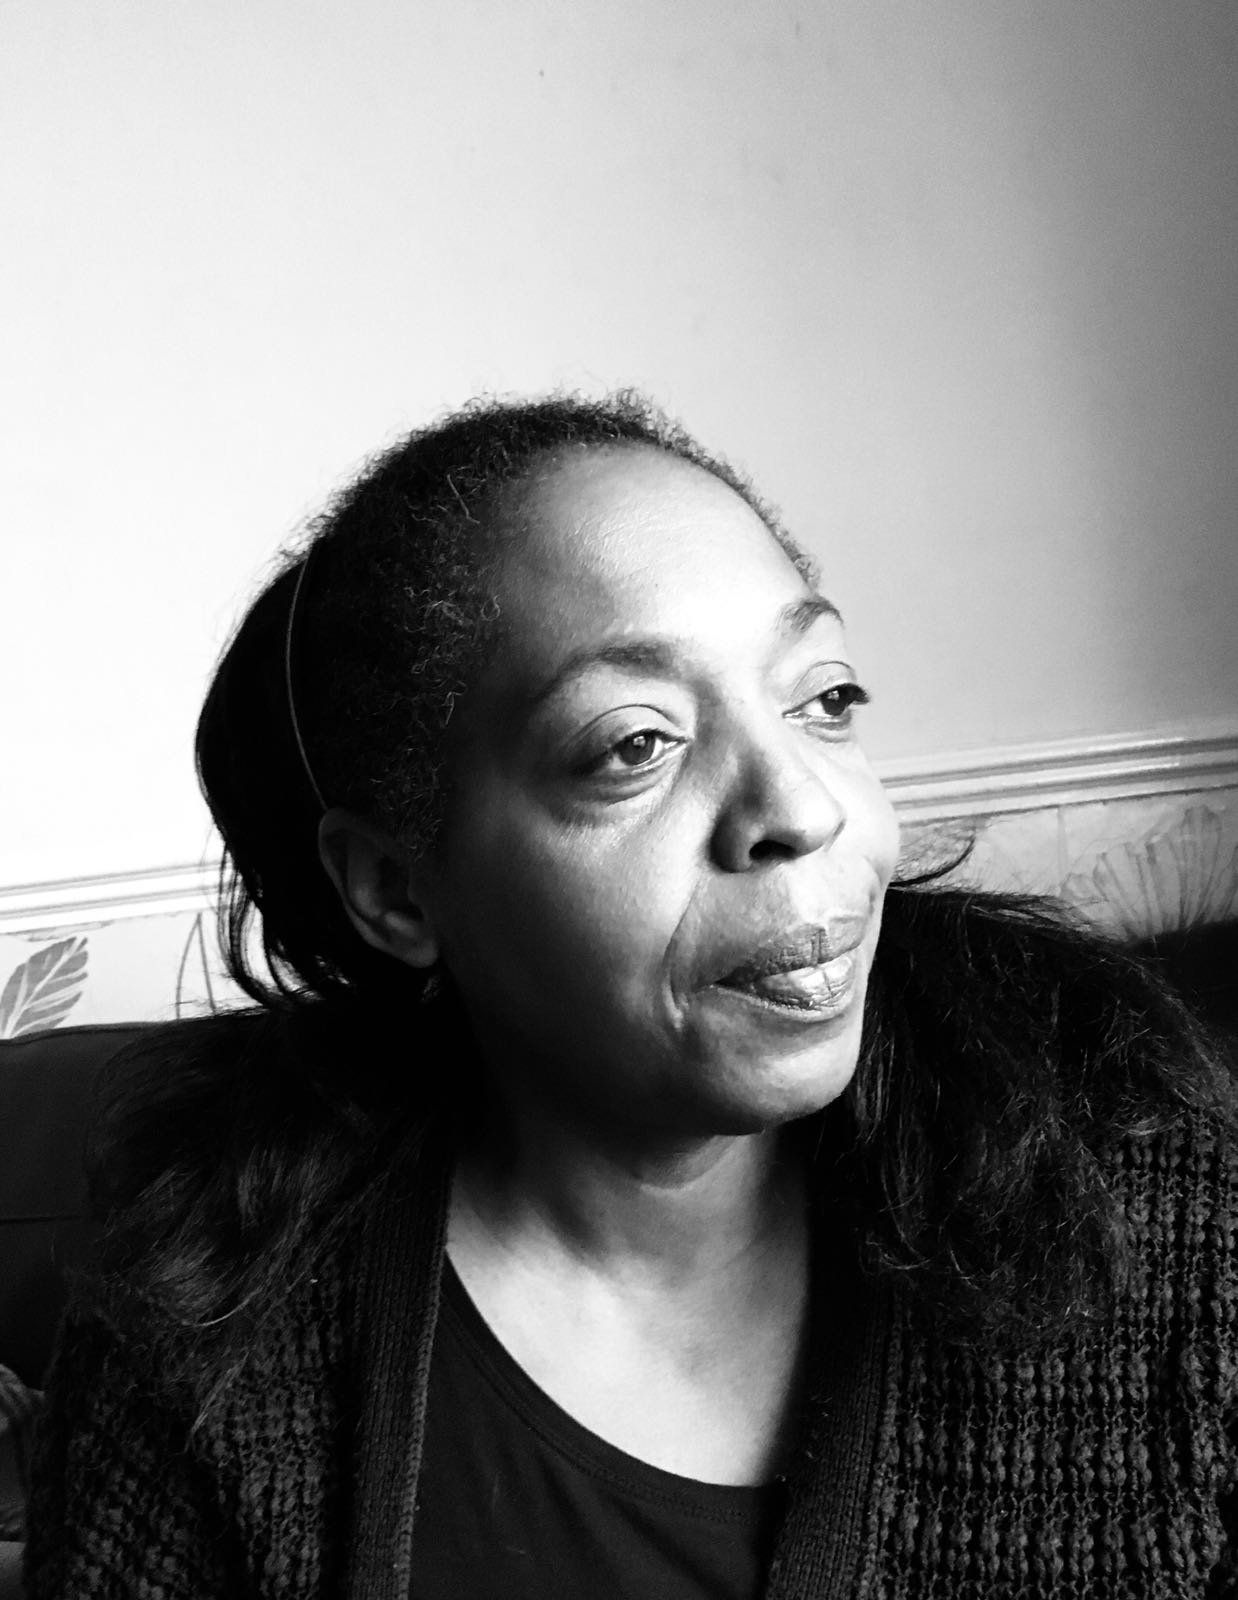 huffingtonpost.co.uk - Nadine White - Crowdfund Bid Launched For Funeral Of Windrush Victim Sarah O'Connor